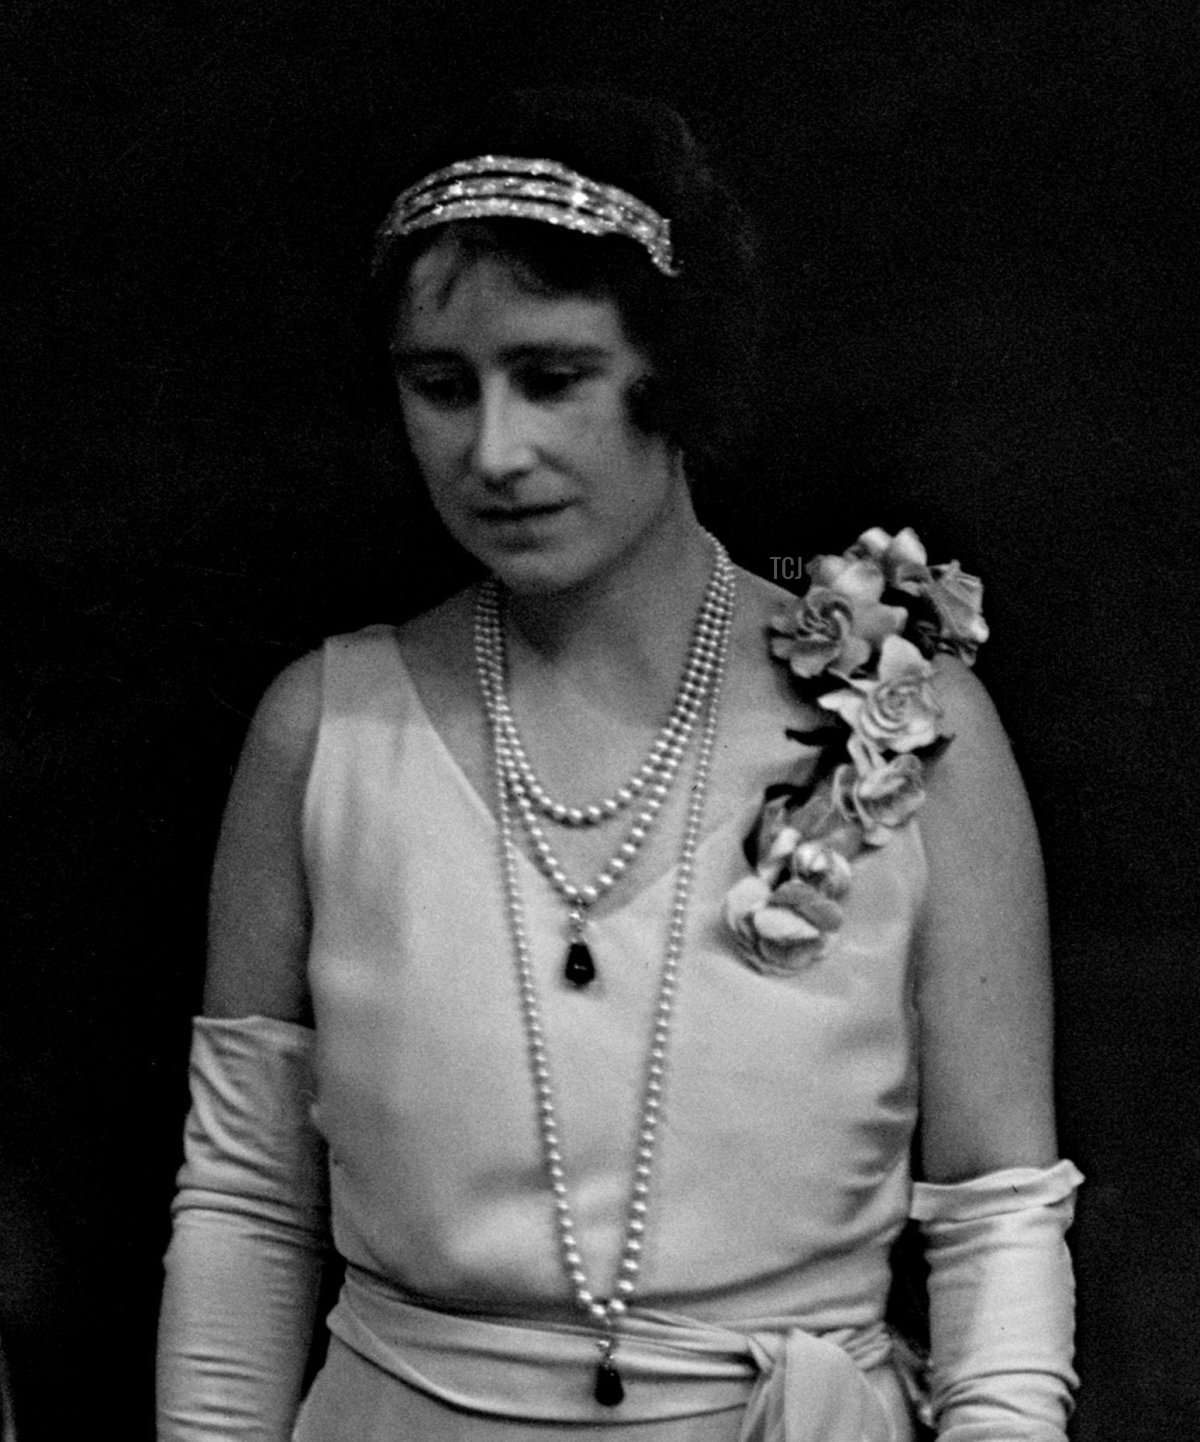 The Duchess of York (later Queen Elizabeth the Queen Mother) wears her Cartier Bracelet Bandeau to attend a ballet performance at the Royal Opera House, July 1933